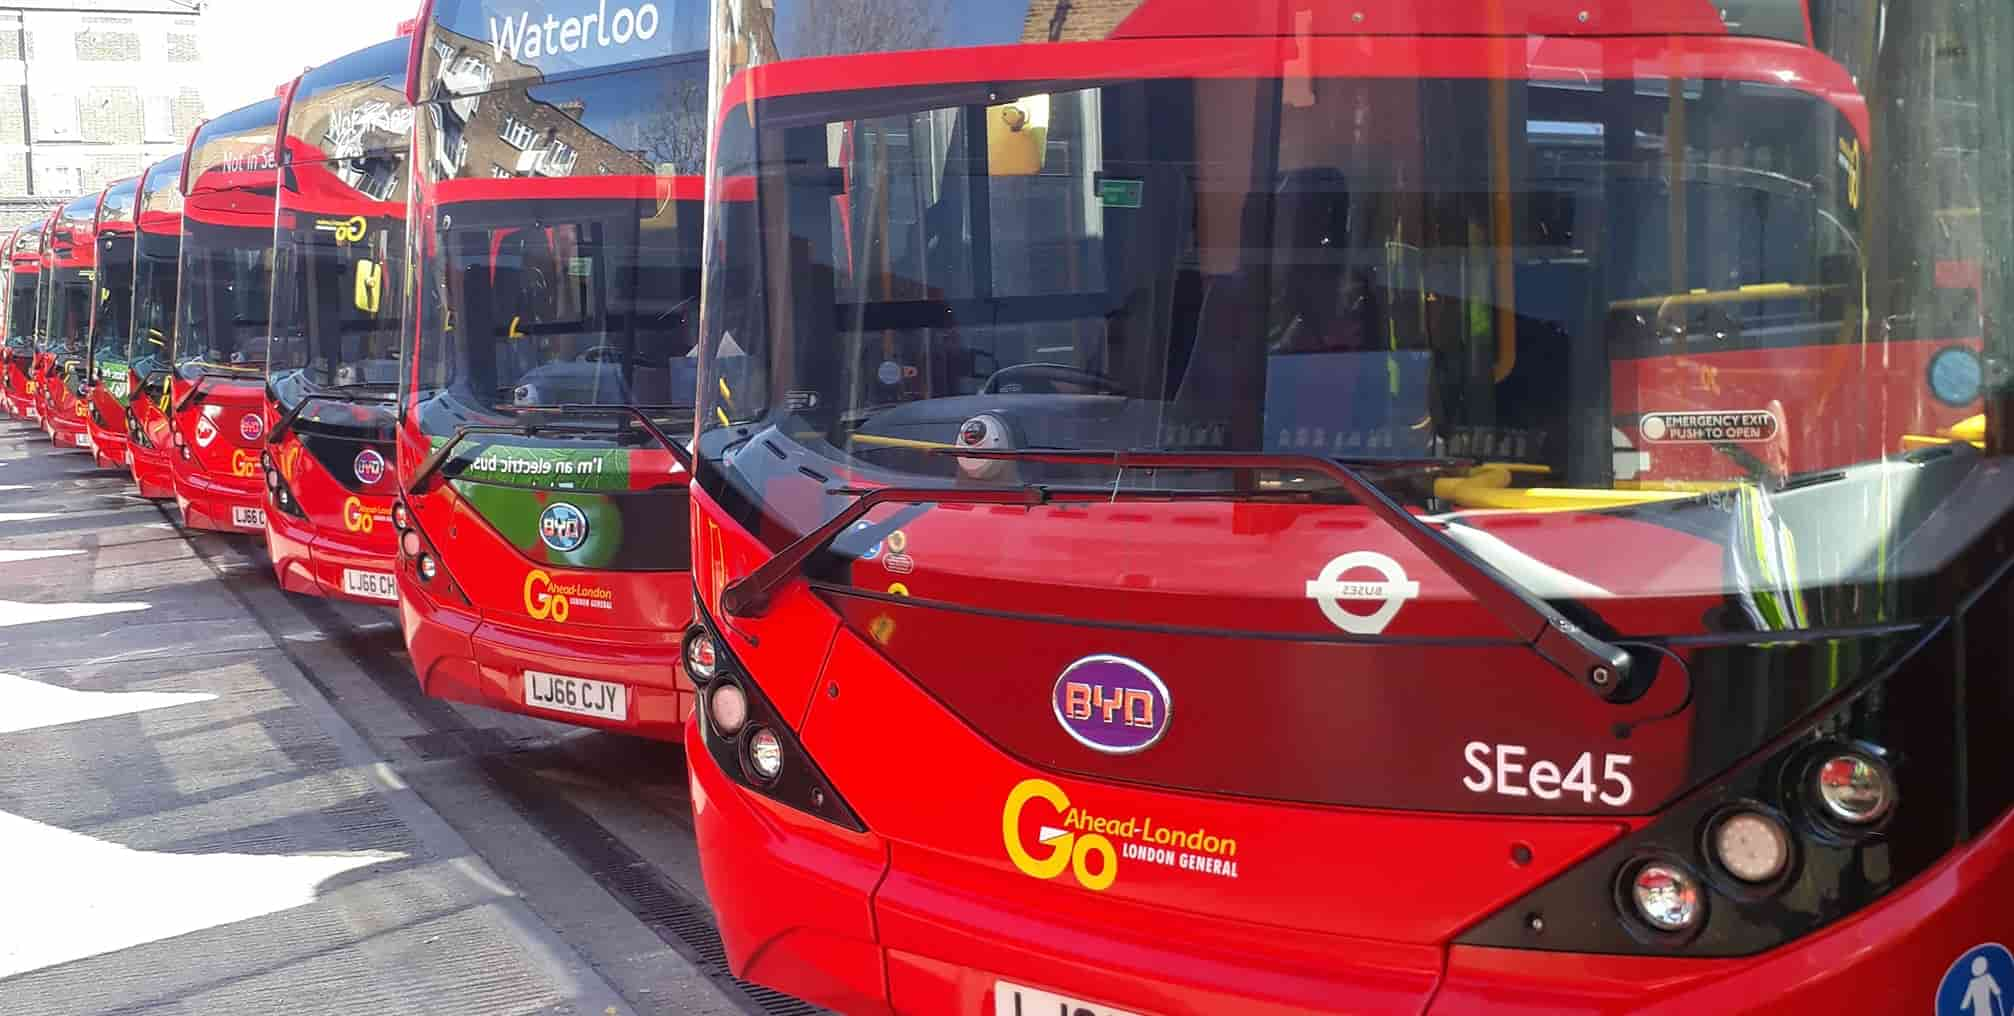 A greener future for London